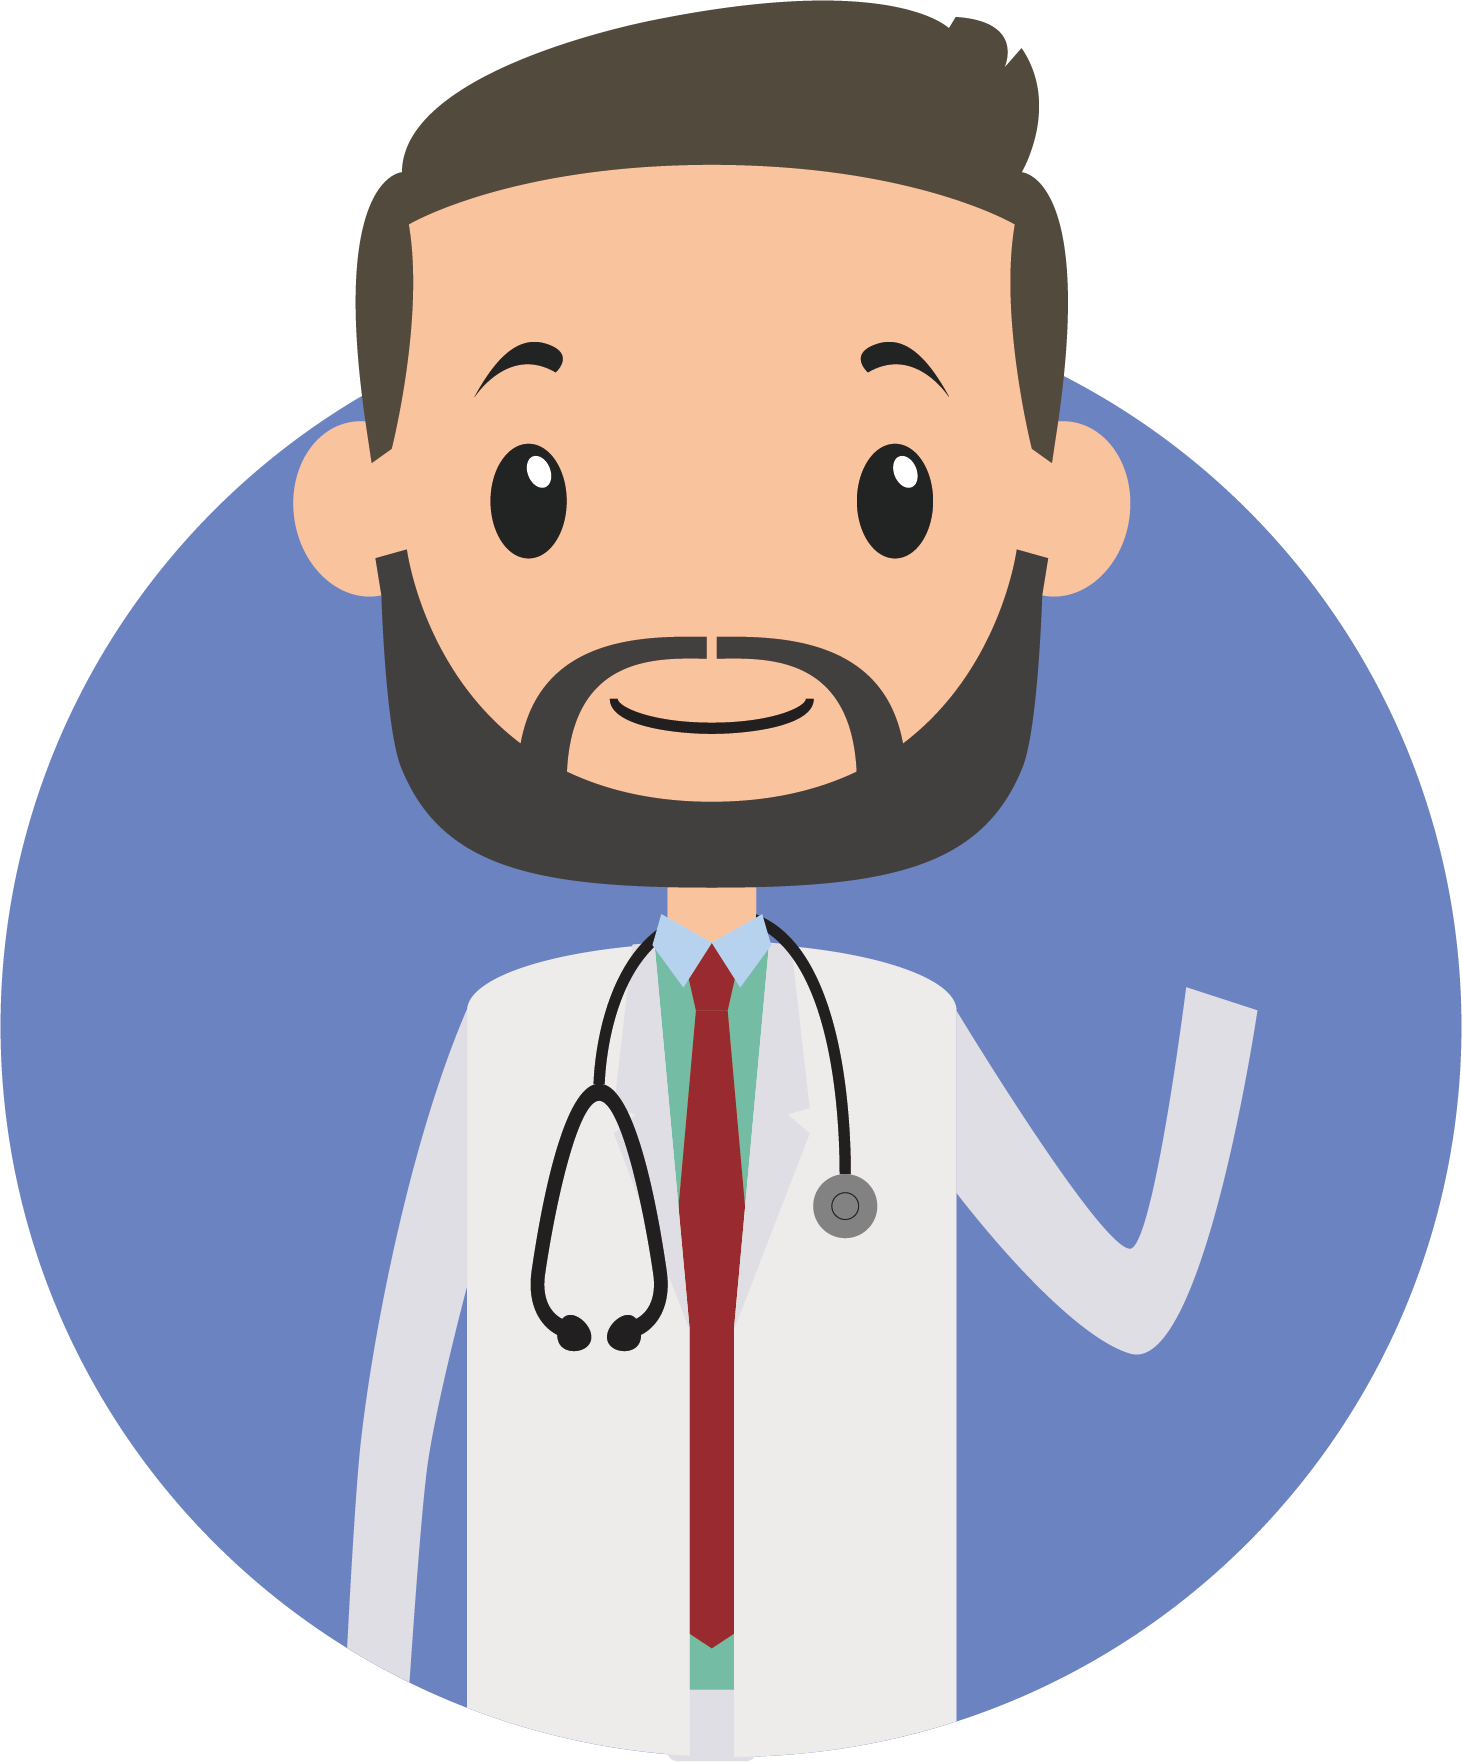 Tomb drawing physician. Cartoon the bearded doctor